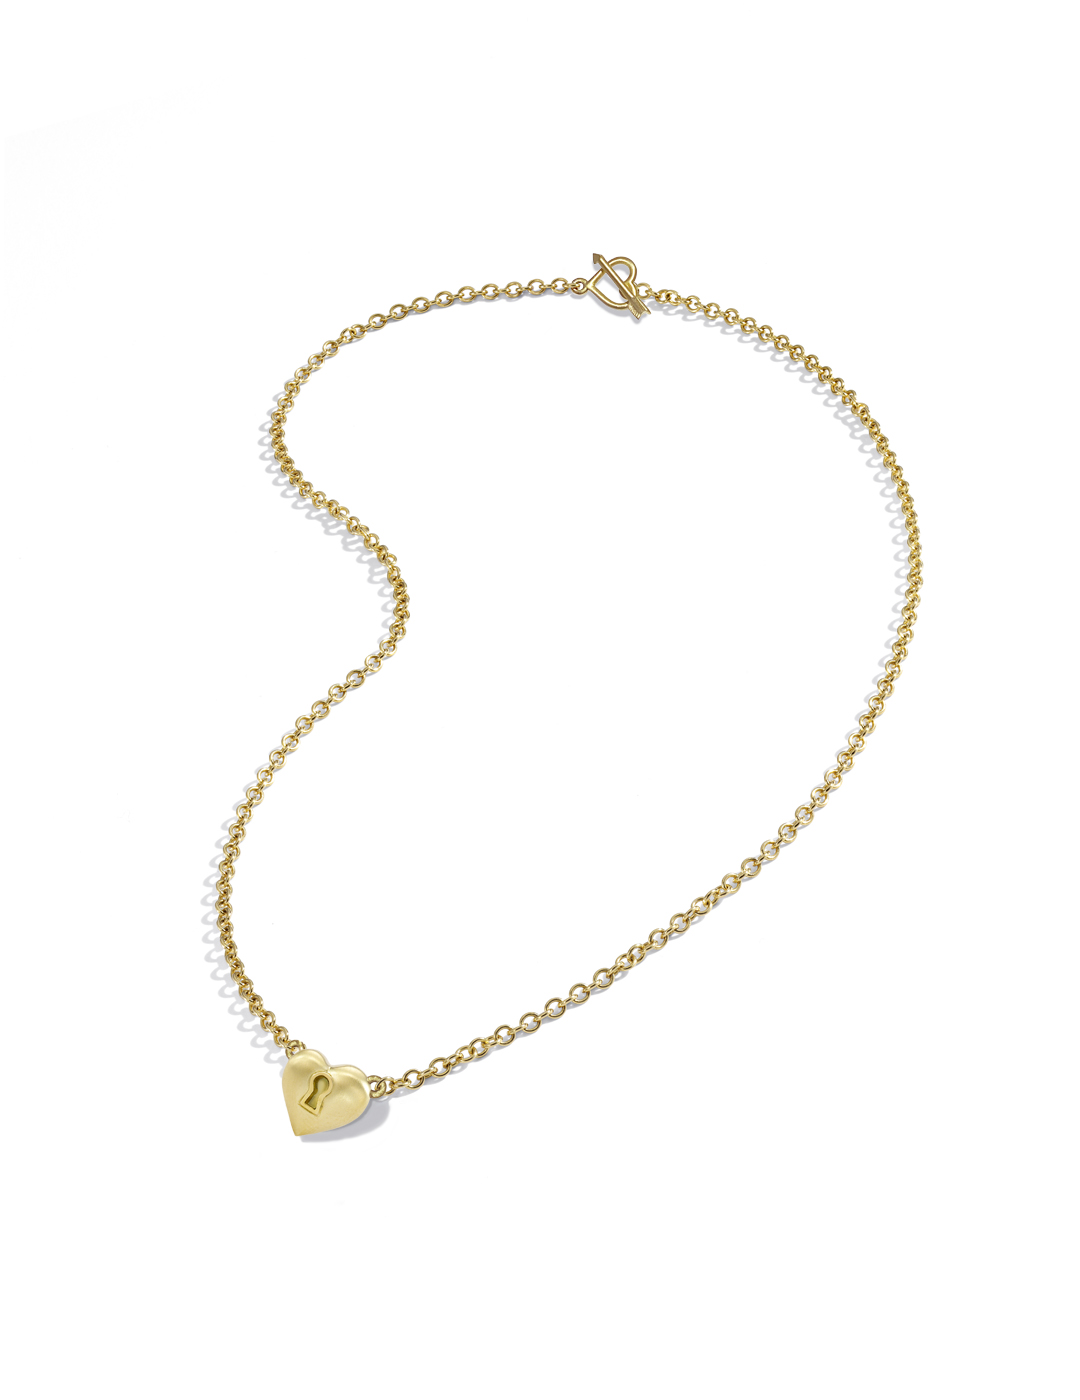 mish_necklaces_Key-To-My-Heart-NK-1